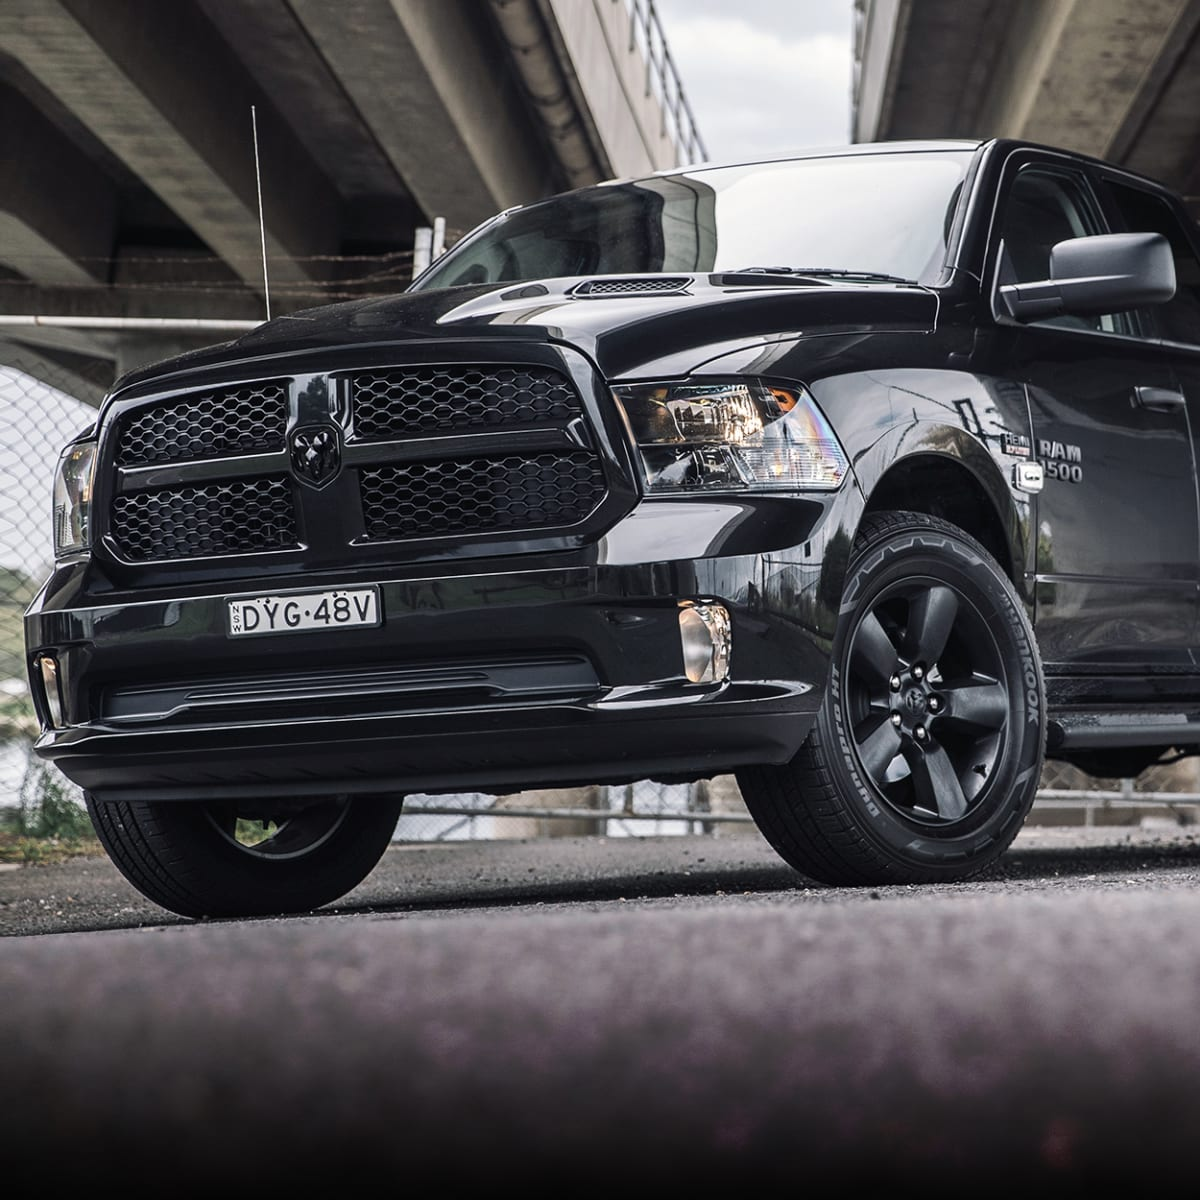 2019 Ram 1500 Express V8 review: The $79,950 entry into US pick-ups